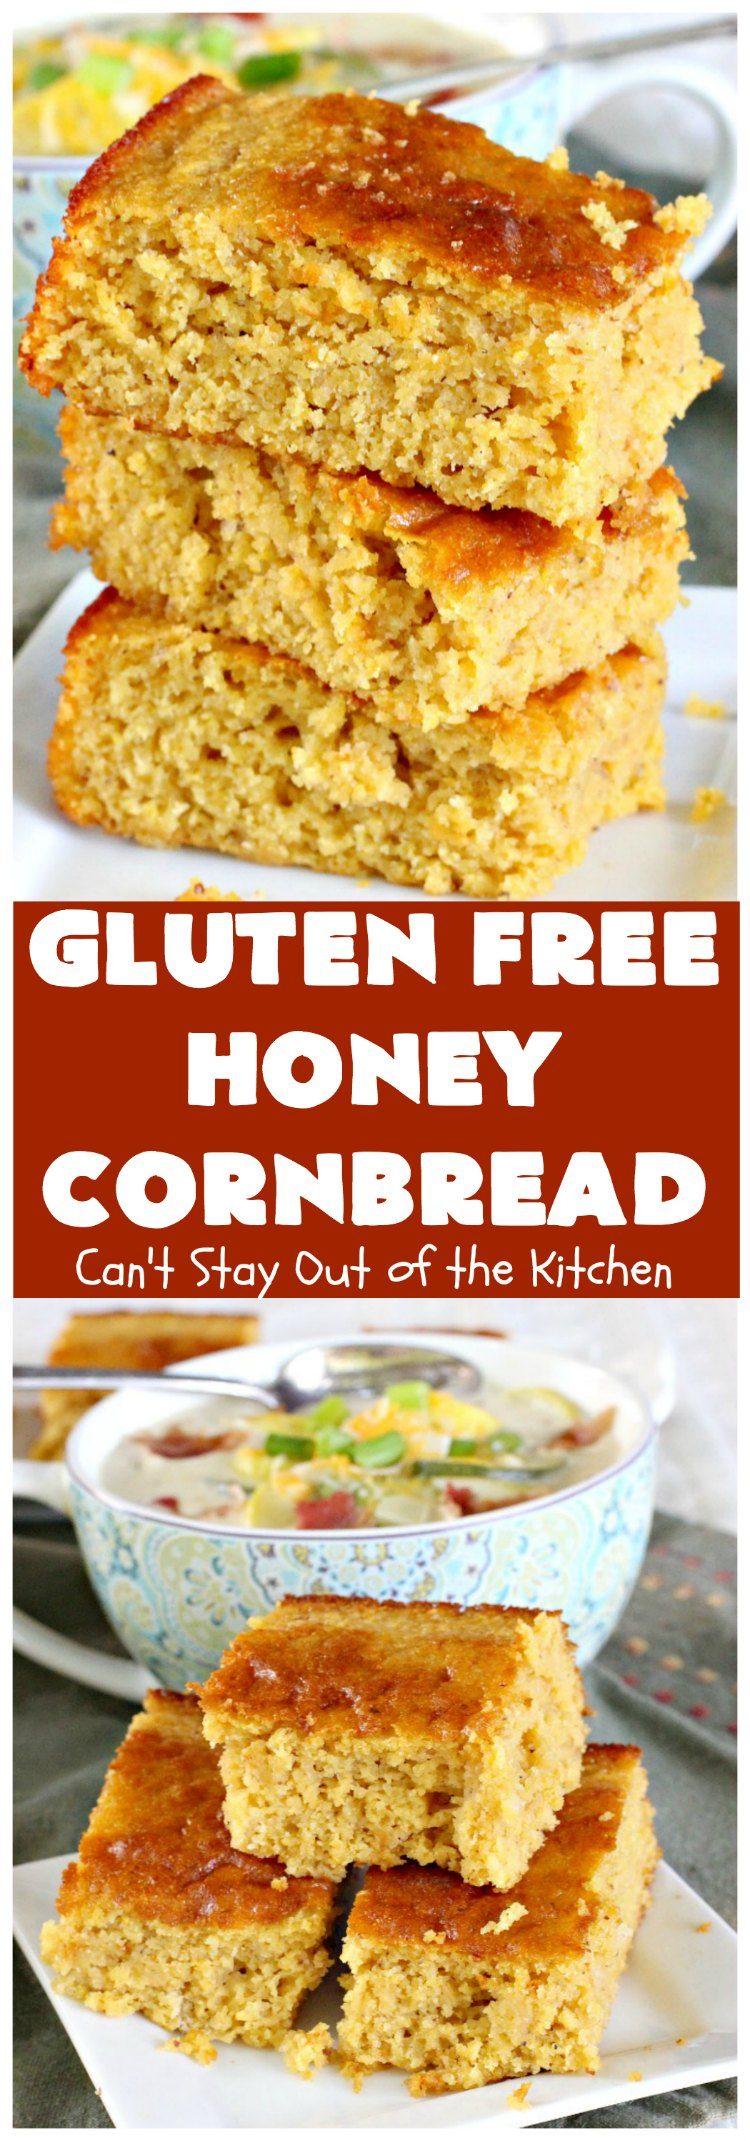 Gluten Free Honey Cornbread | Can't Stay Out of the Kitchen